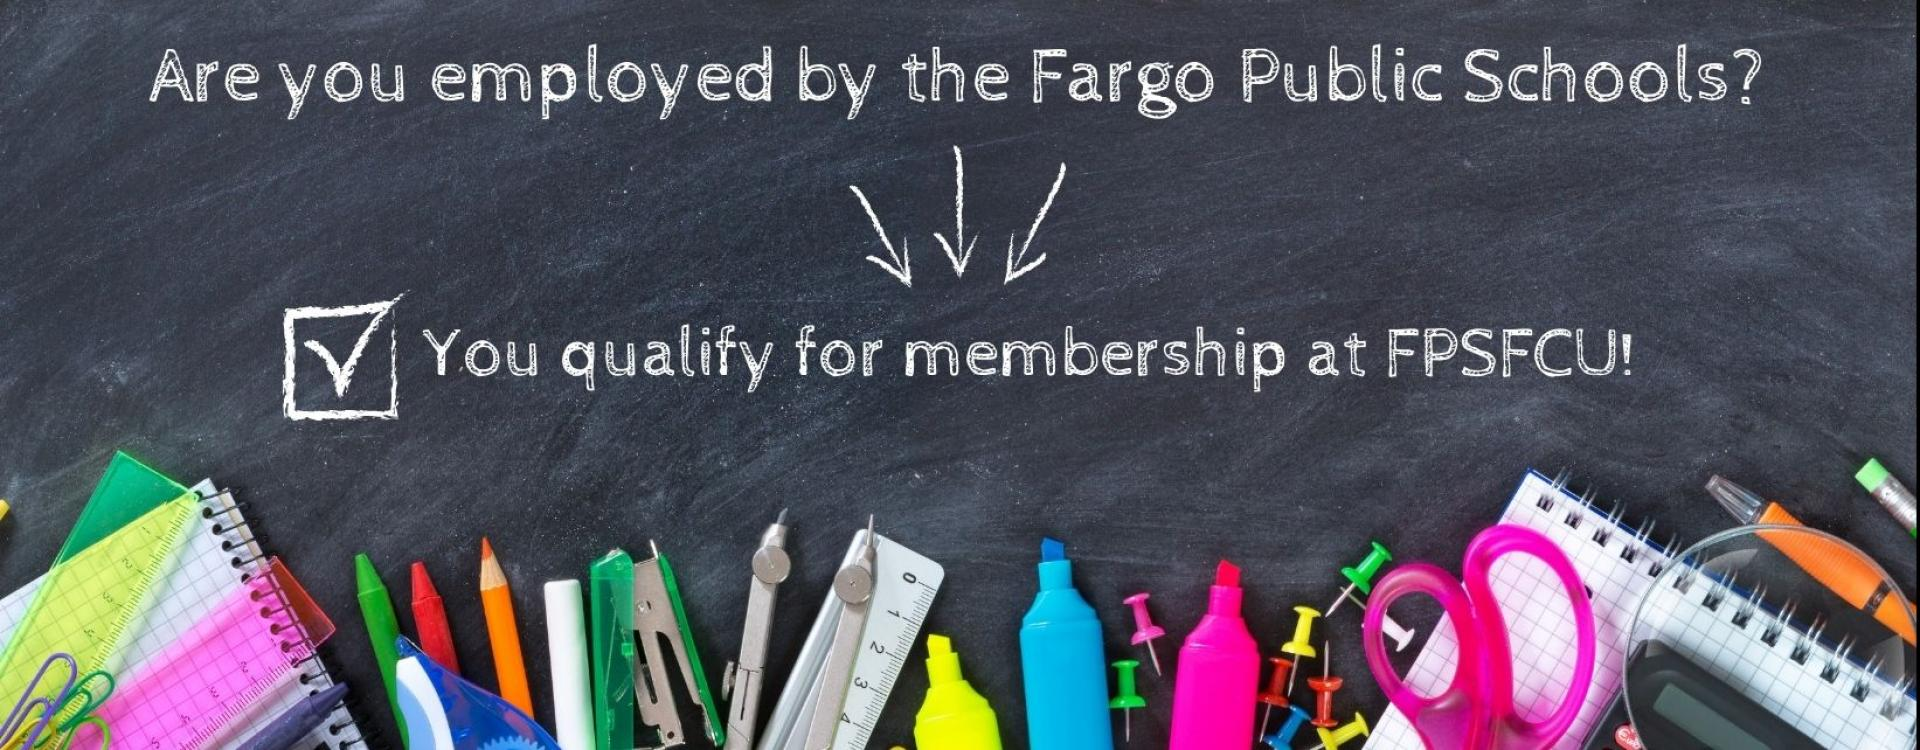 Are you employed by the Fargo Public Schools?  Then you qualify for membership at FPSFCU!